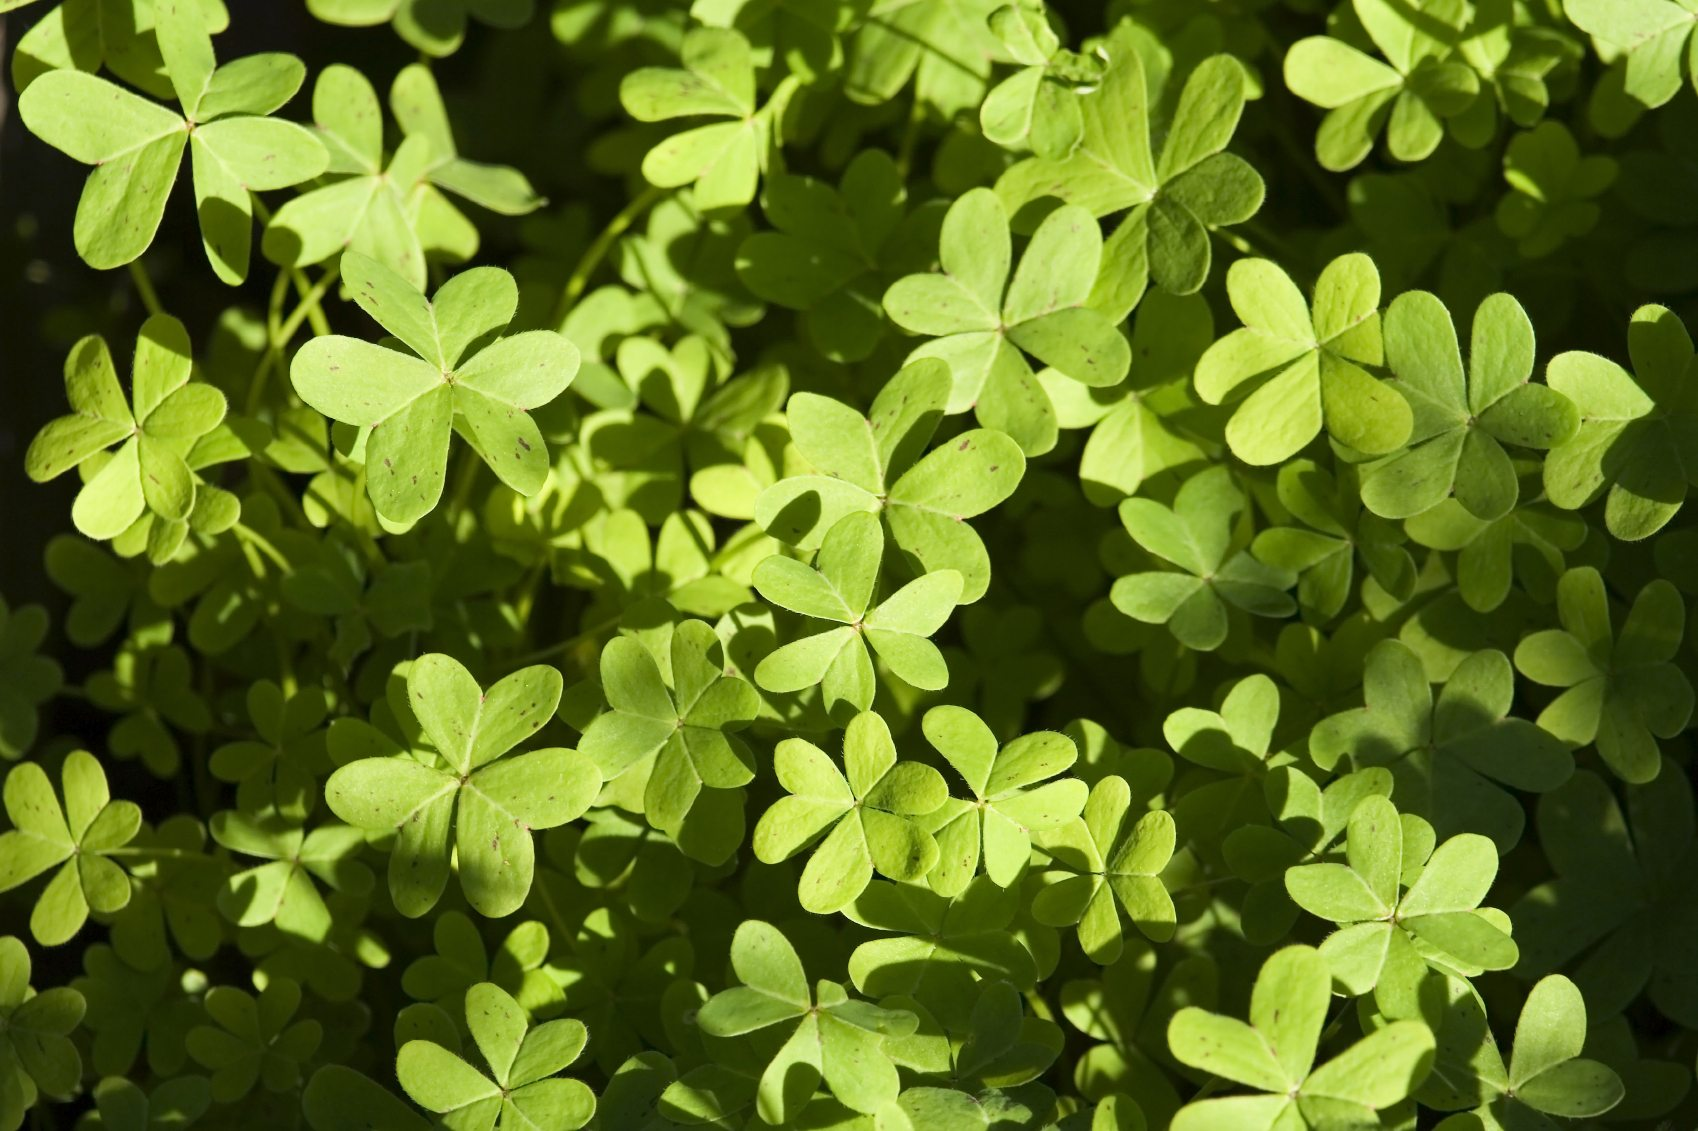 Oxalis Weed Control Techniques Types Of Oxalis Weeds And Their